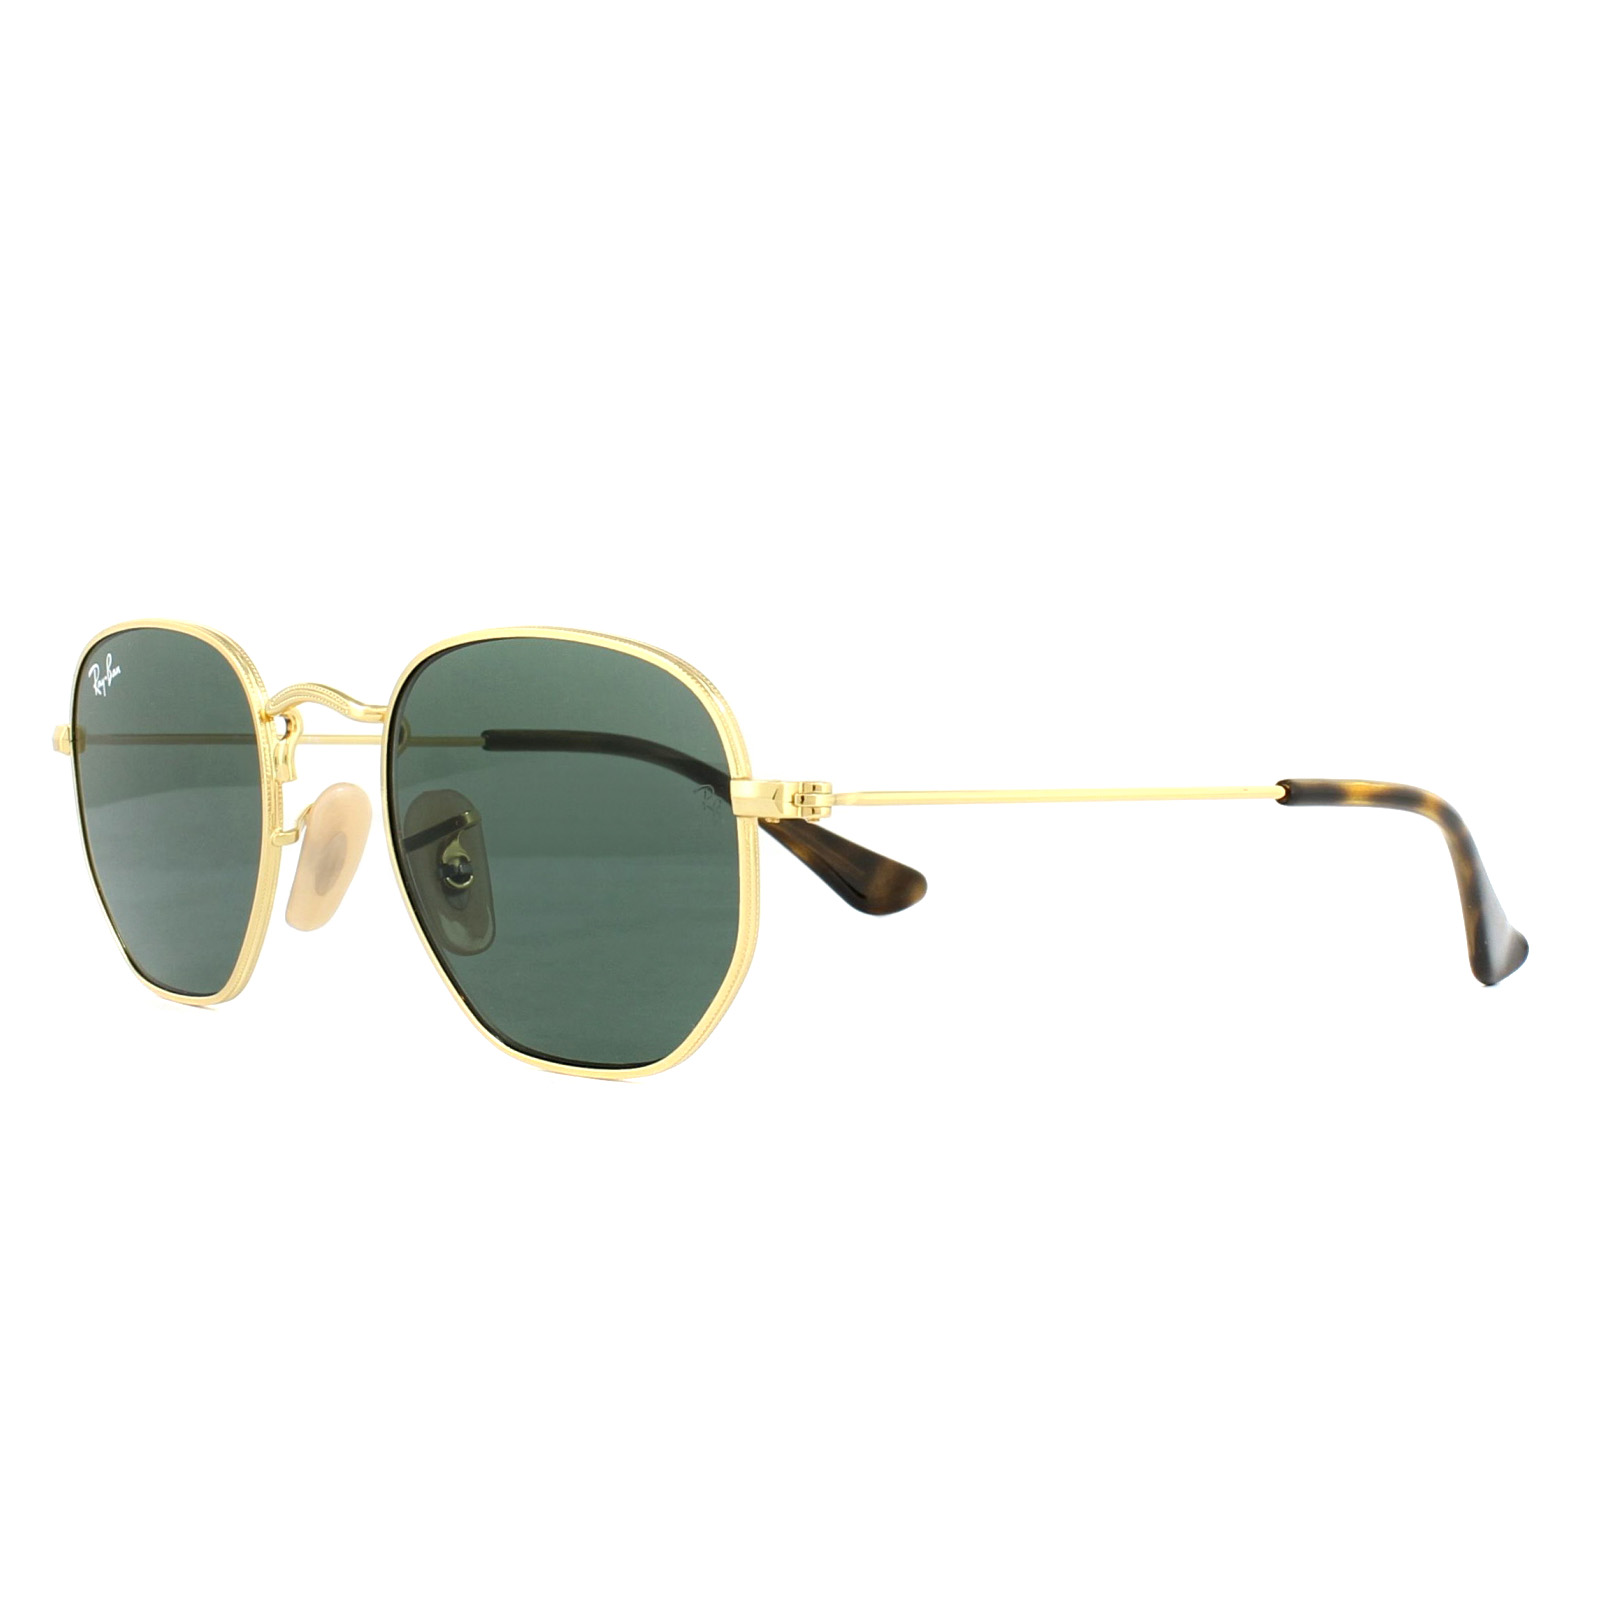 504448dfbd708 Sentinel Ray-Ban Junior Sunglasses 9541SN 223 71 Gold Green G-15